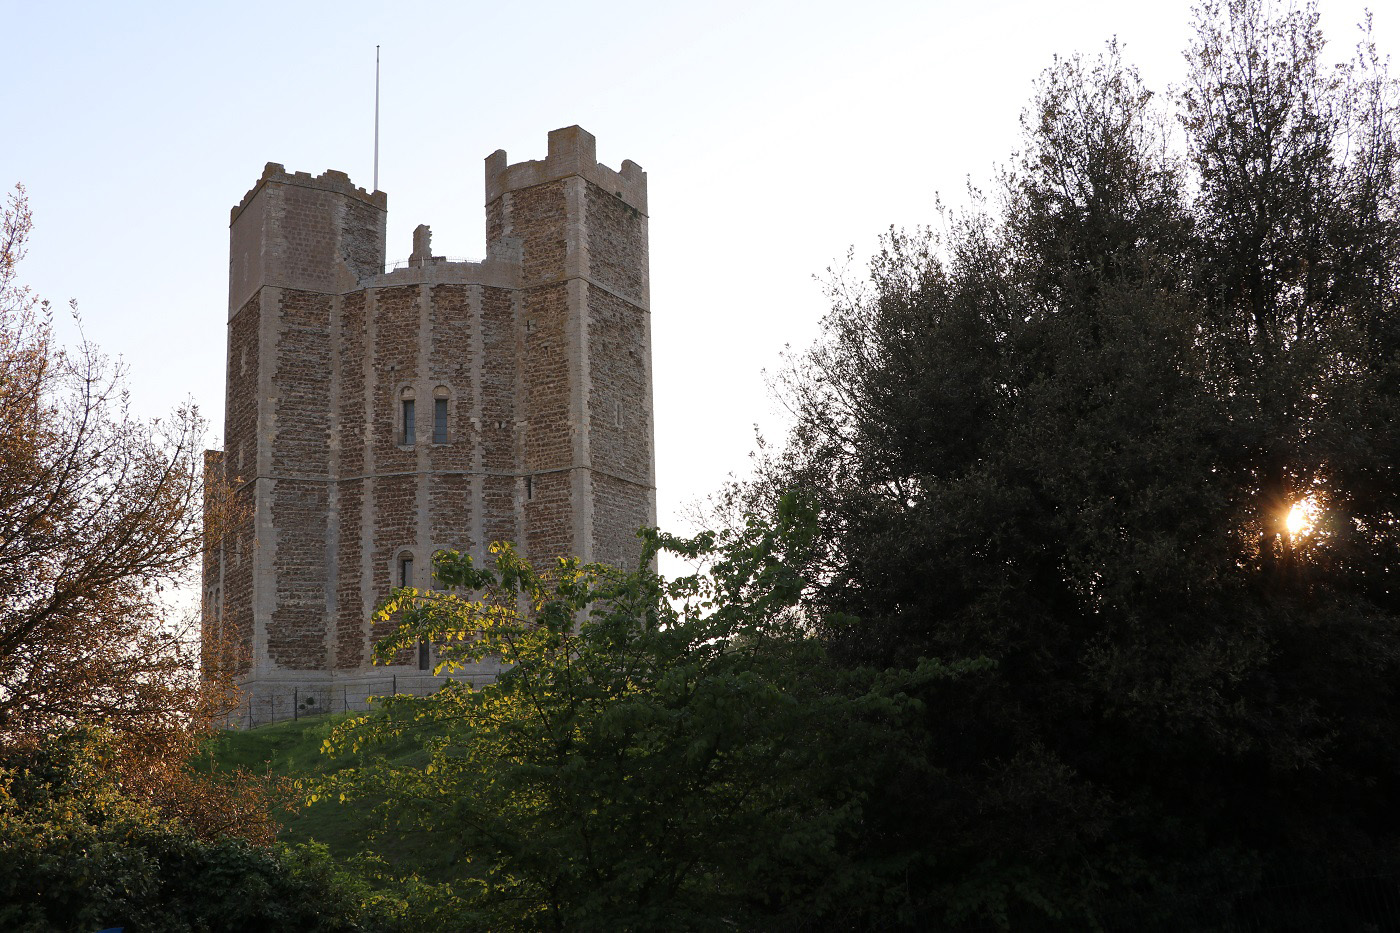 Twilight at Orford Castle